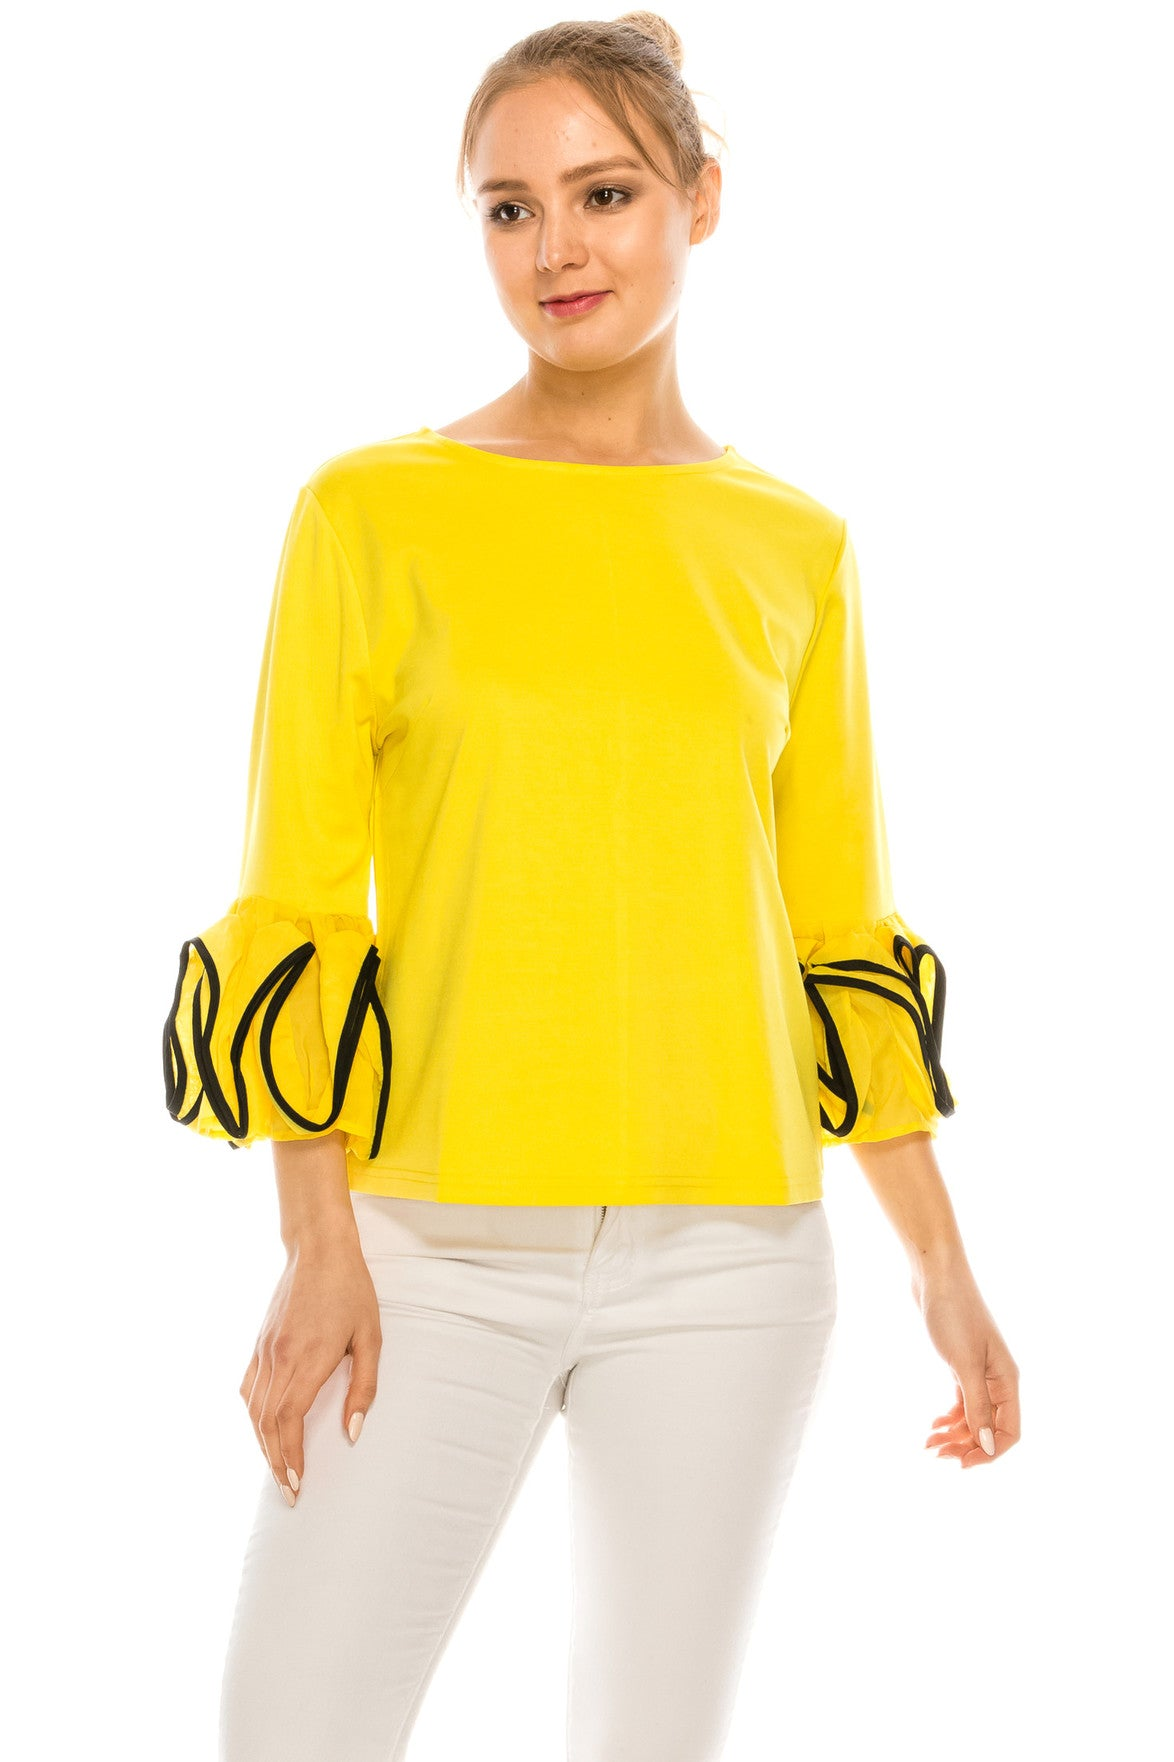 T307-YELLOW - Modgal